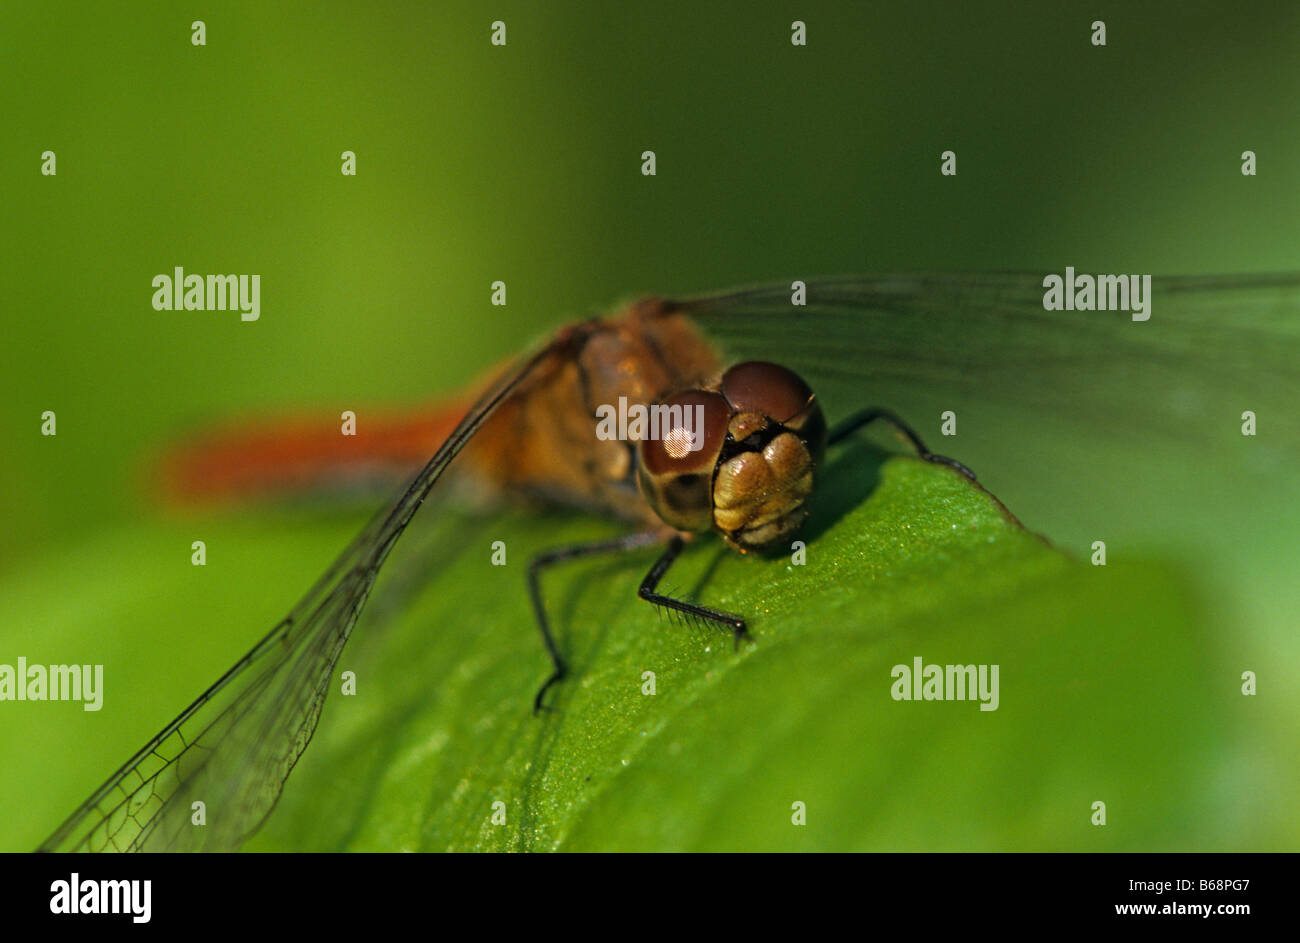 Dragonfly Ruddy Darter - Stock Image